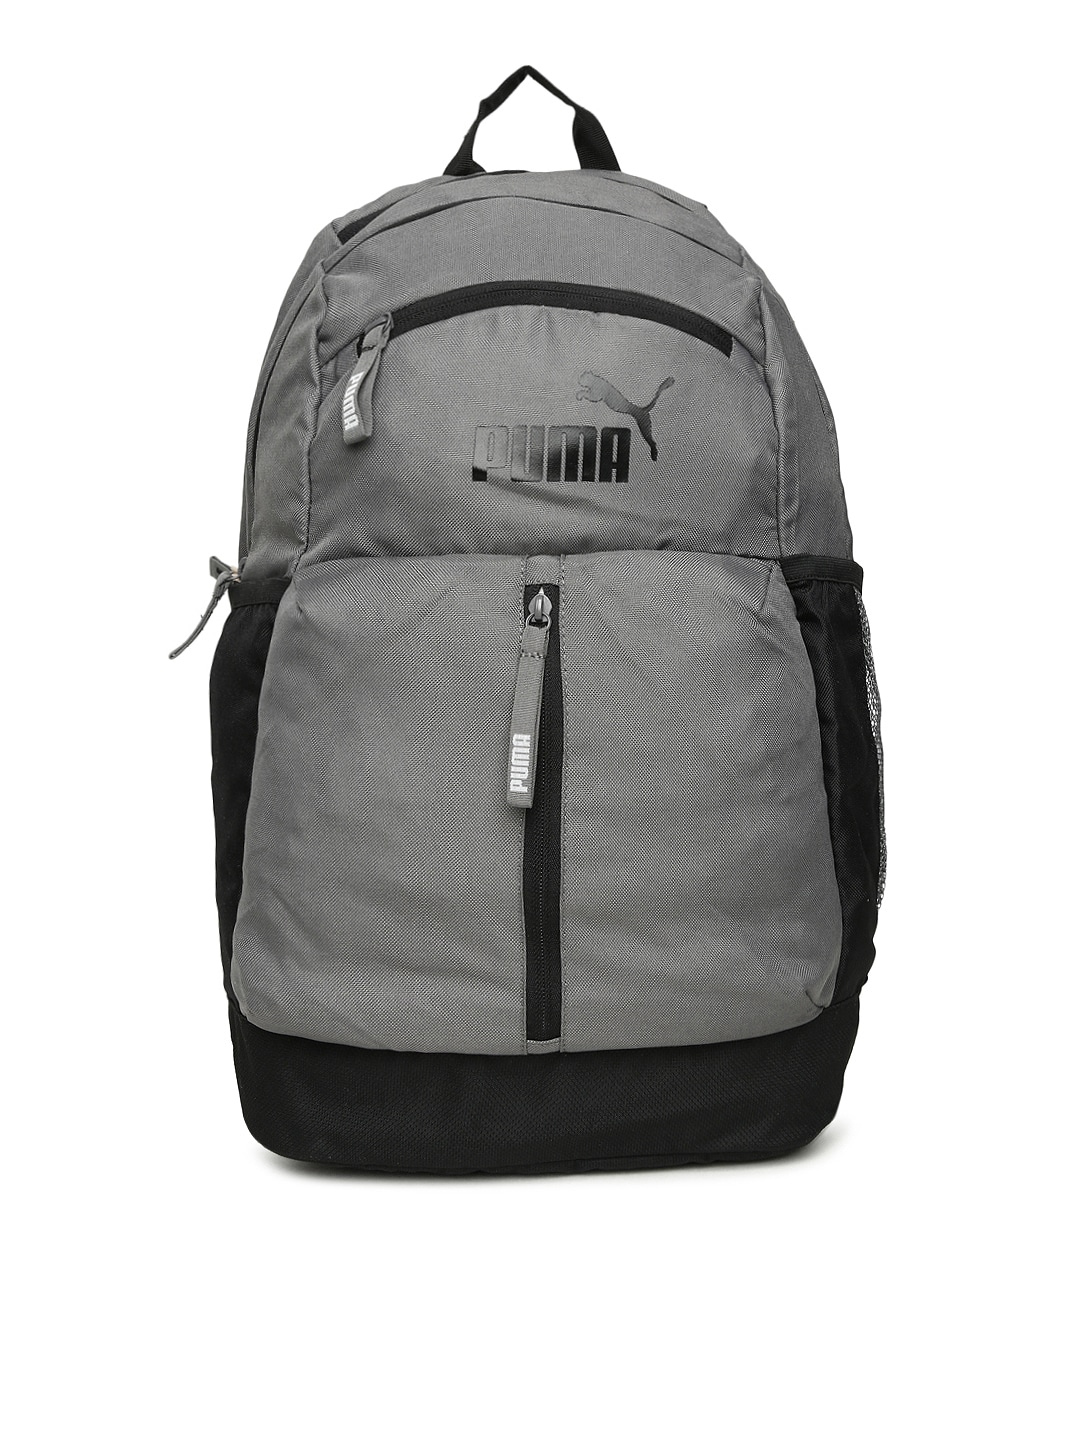 Buy Puma Unisex Grey Solid Maze Backpack At Best Price